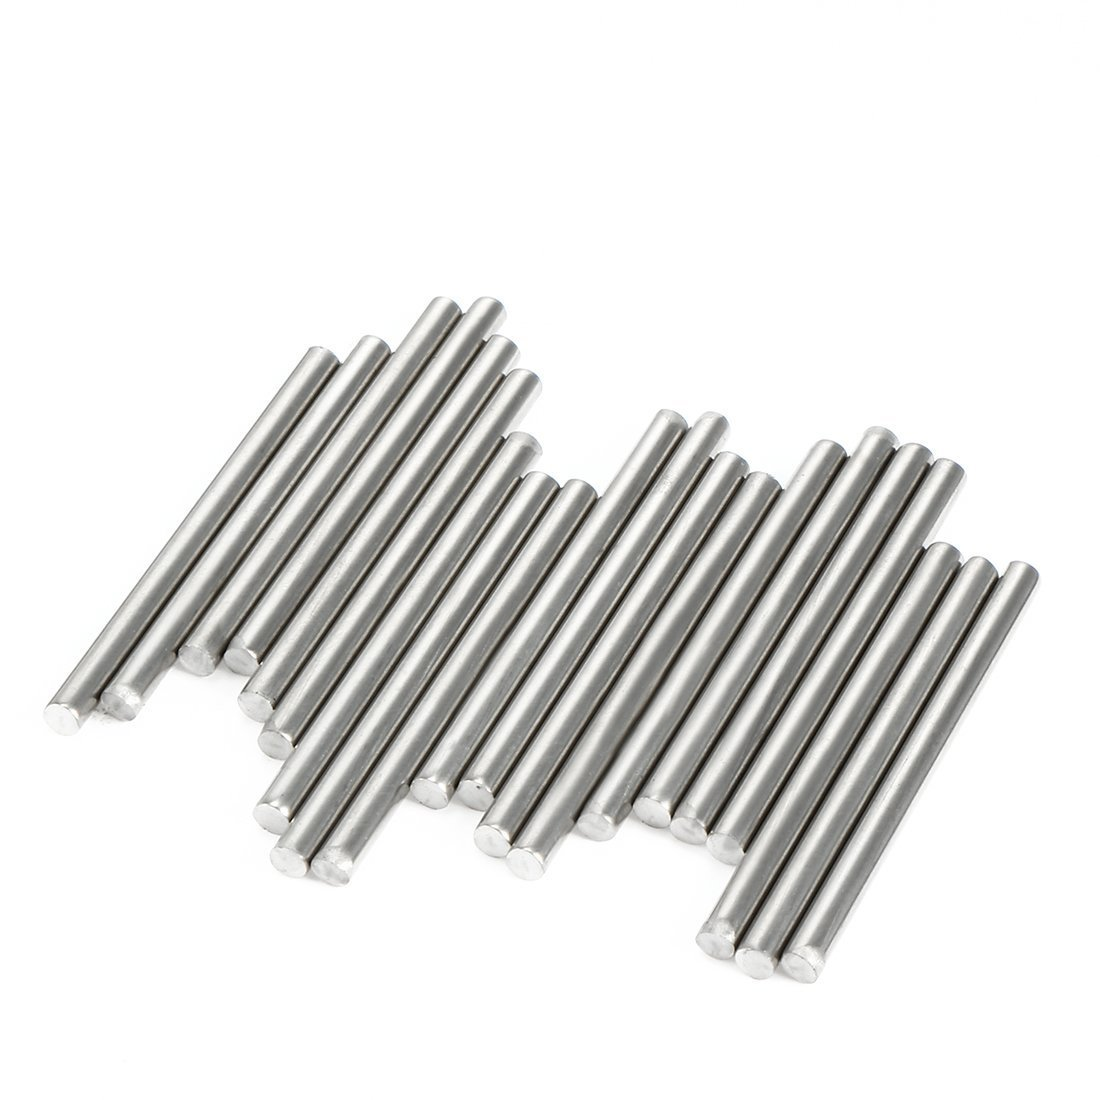 sourcingmap 20Pcs Stainless Steel Round Shaft Rods Axles 2mm x 45mm for RC Toy Car a17030200ux0547